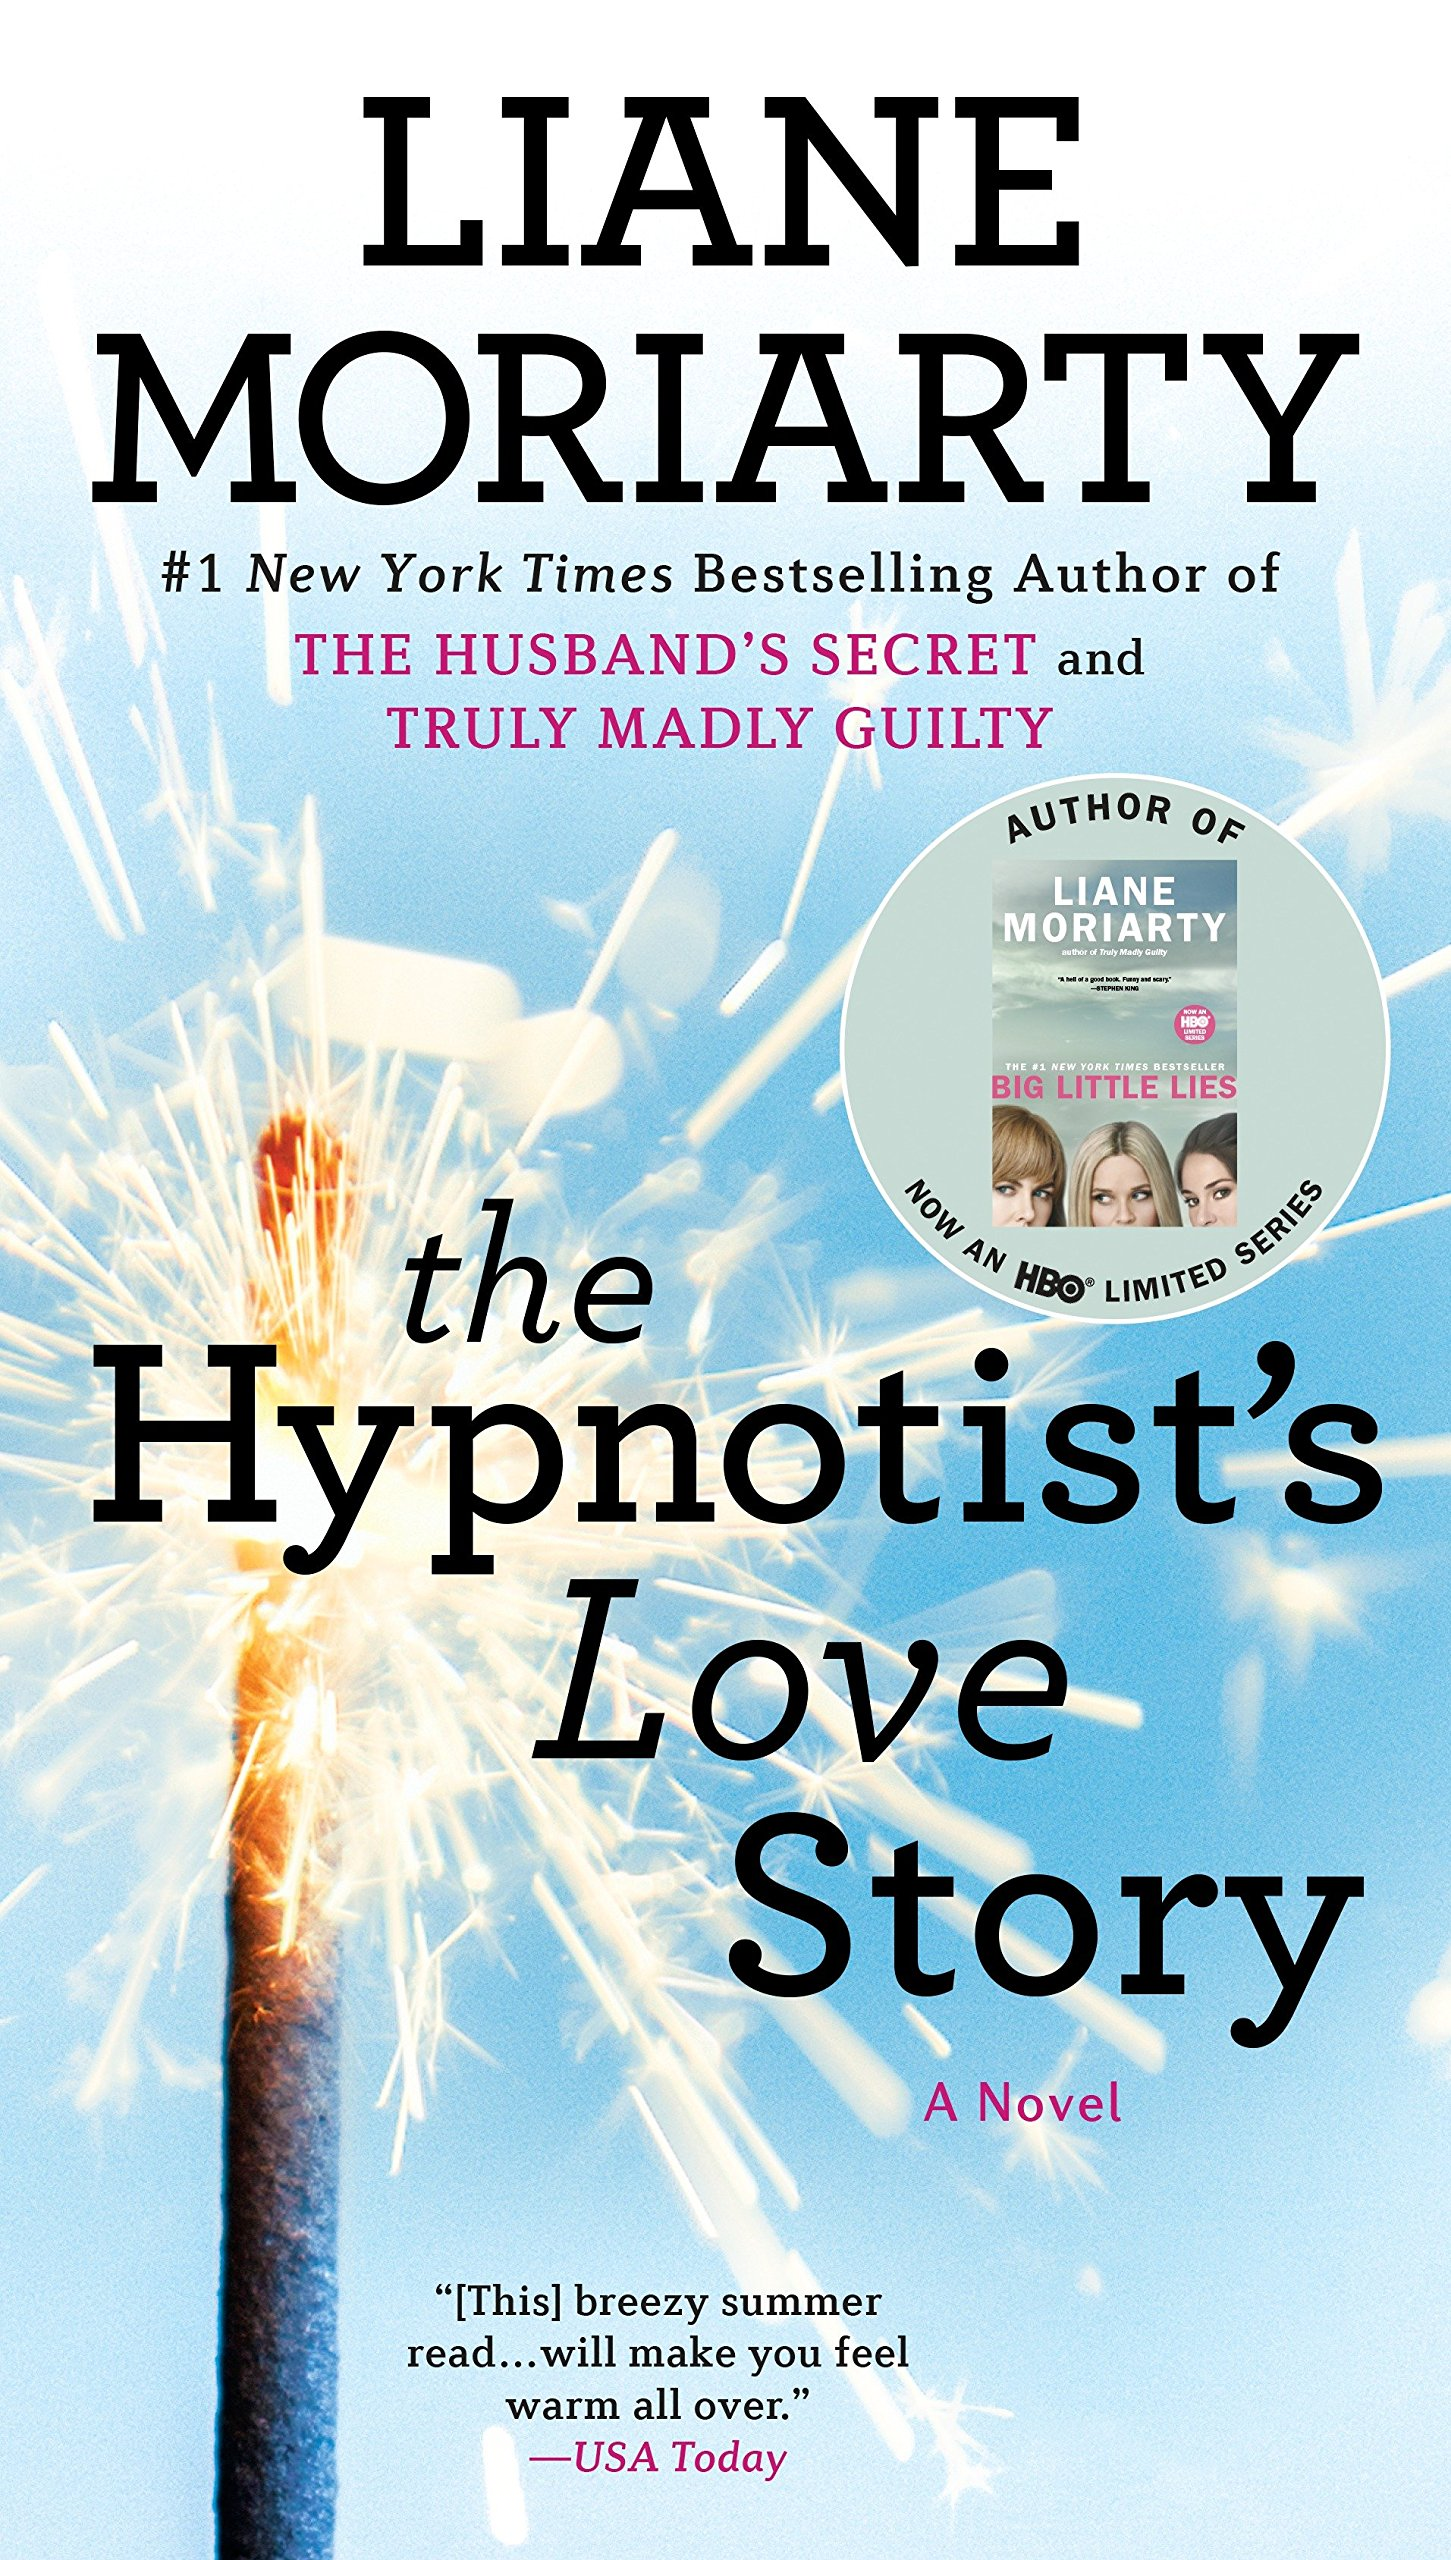 The Hypnotist's Love Story book cover